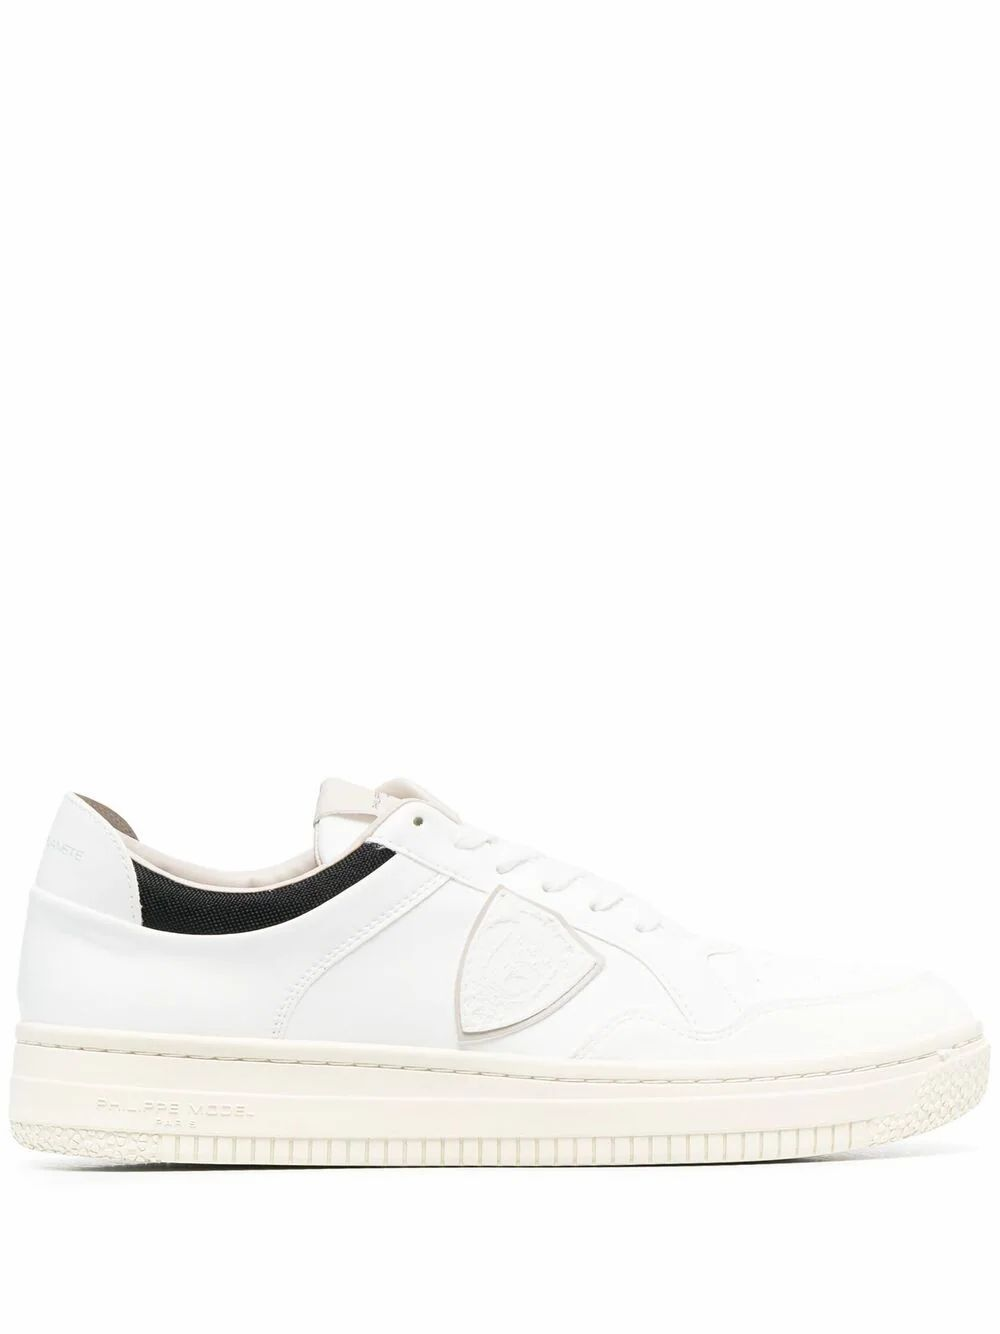 Philippe Model Low tops PHILIPPE MODEL MEN'S LYLUBL04 WHITE LEATHER SNEAKERS